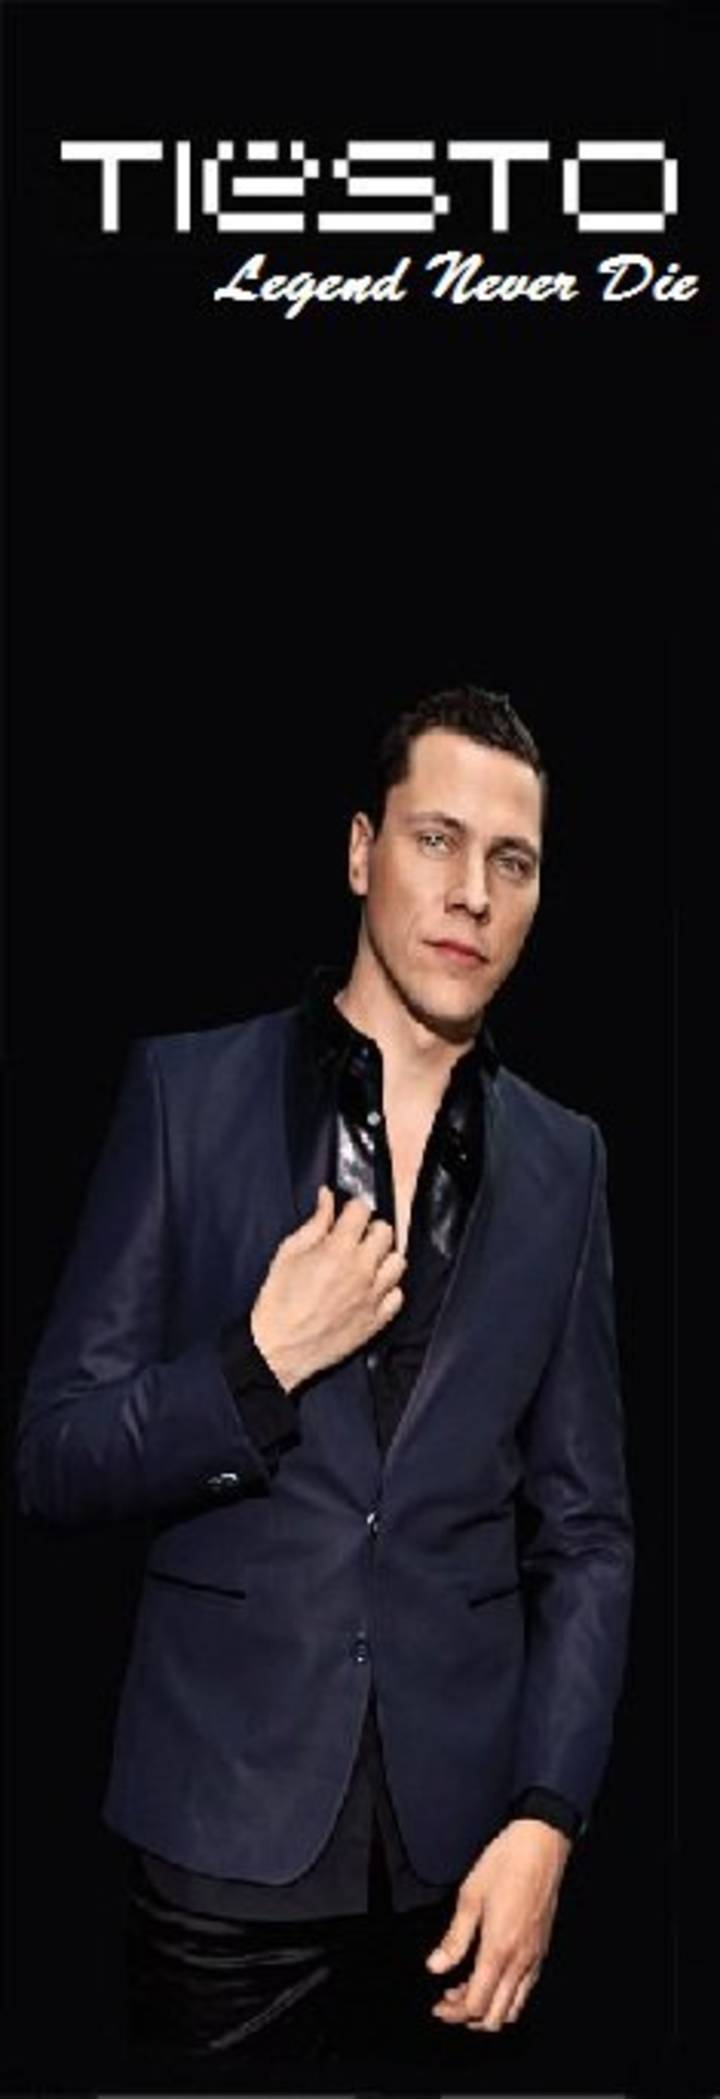 Tiësto Legend Never Die Tour Dates